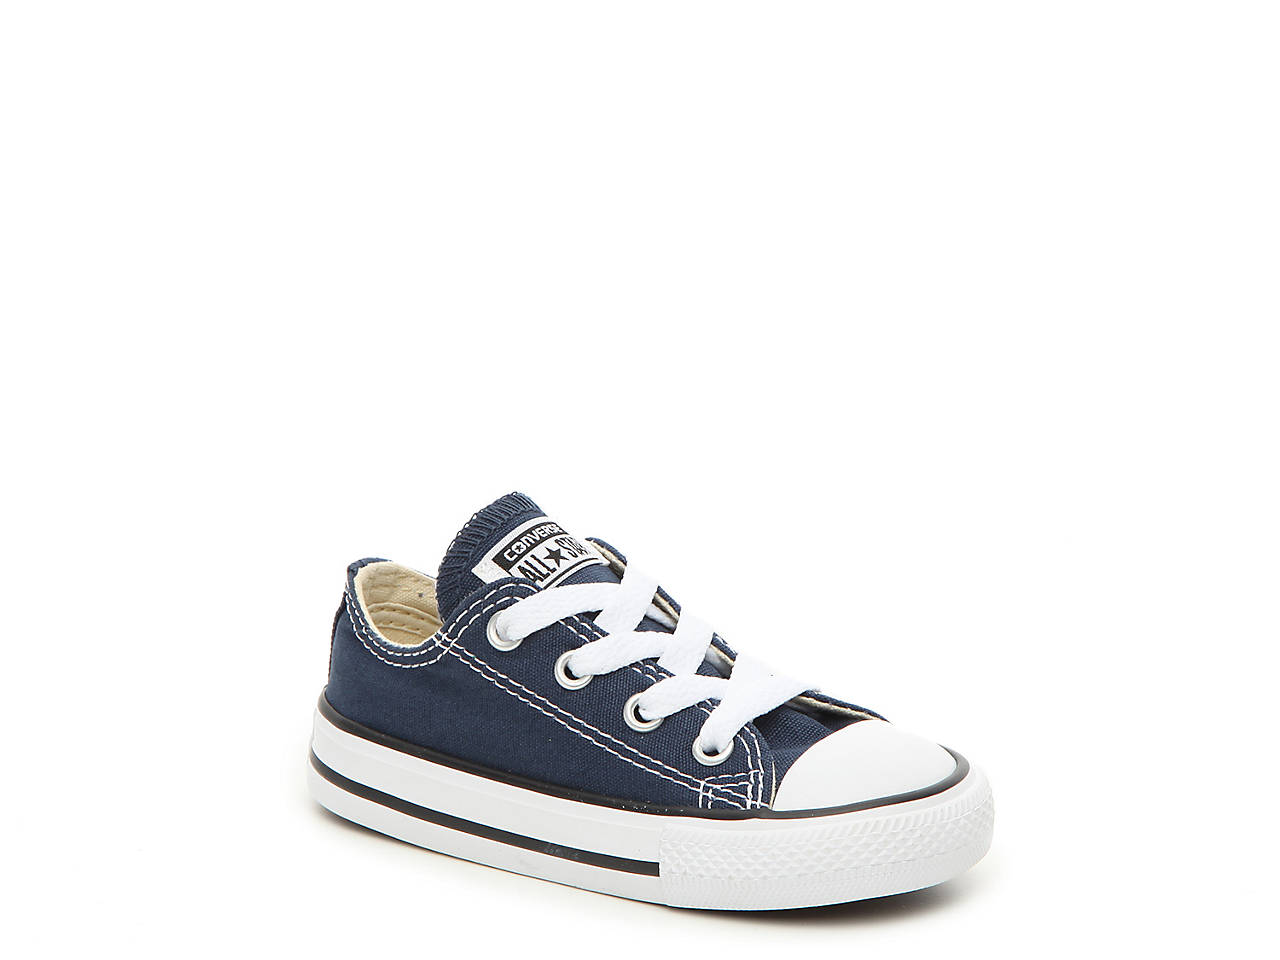 c13317857551 Converse Chuck Taylor All Star Infant   Toddler Sneaker Kids Shoes